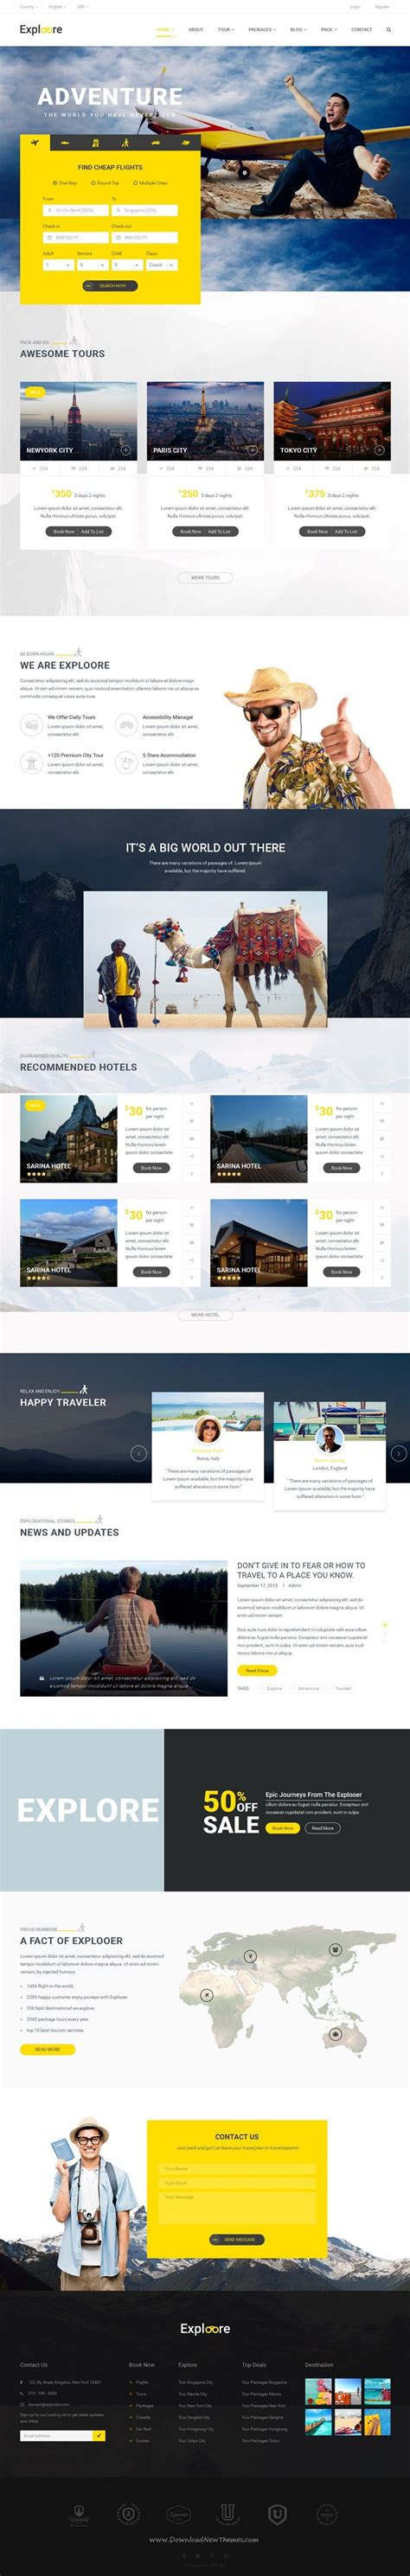 1000 Ideas About Hotel Website On Pinterest Website Layout Food Website And Website Design Tour Operator Website Template